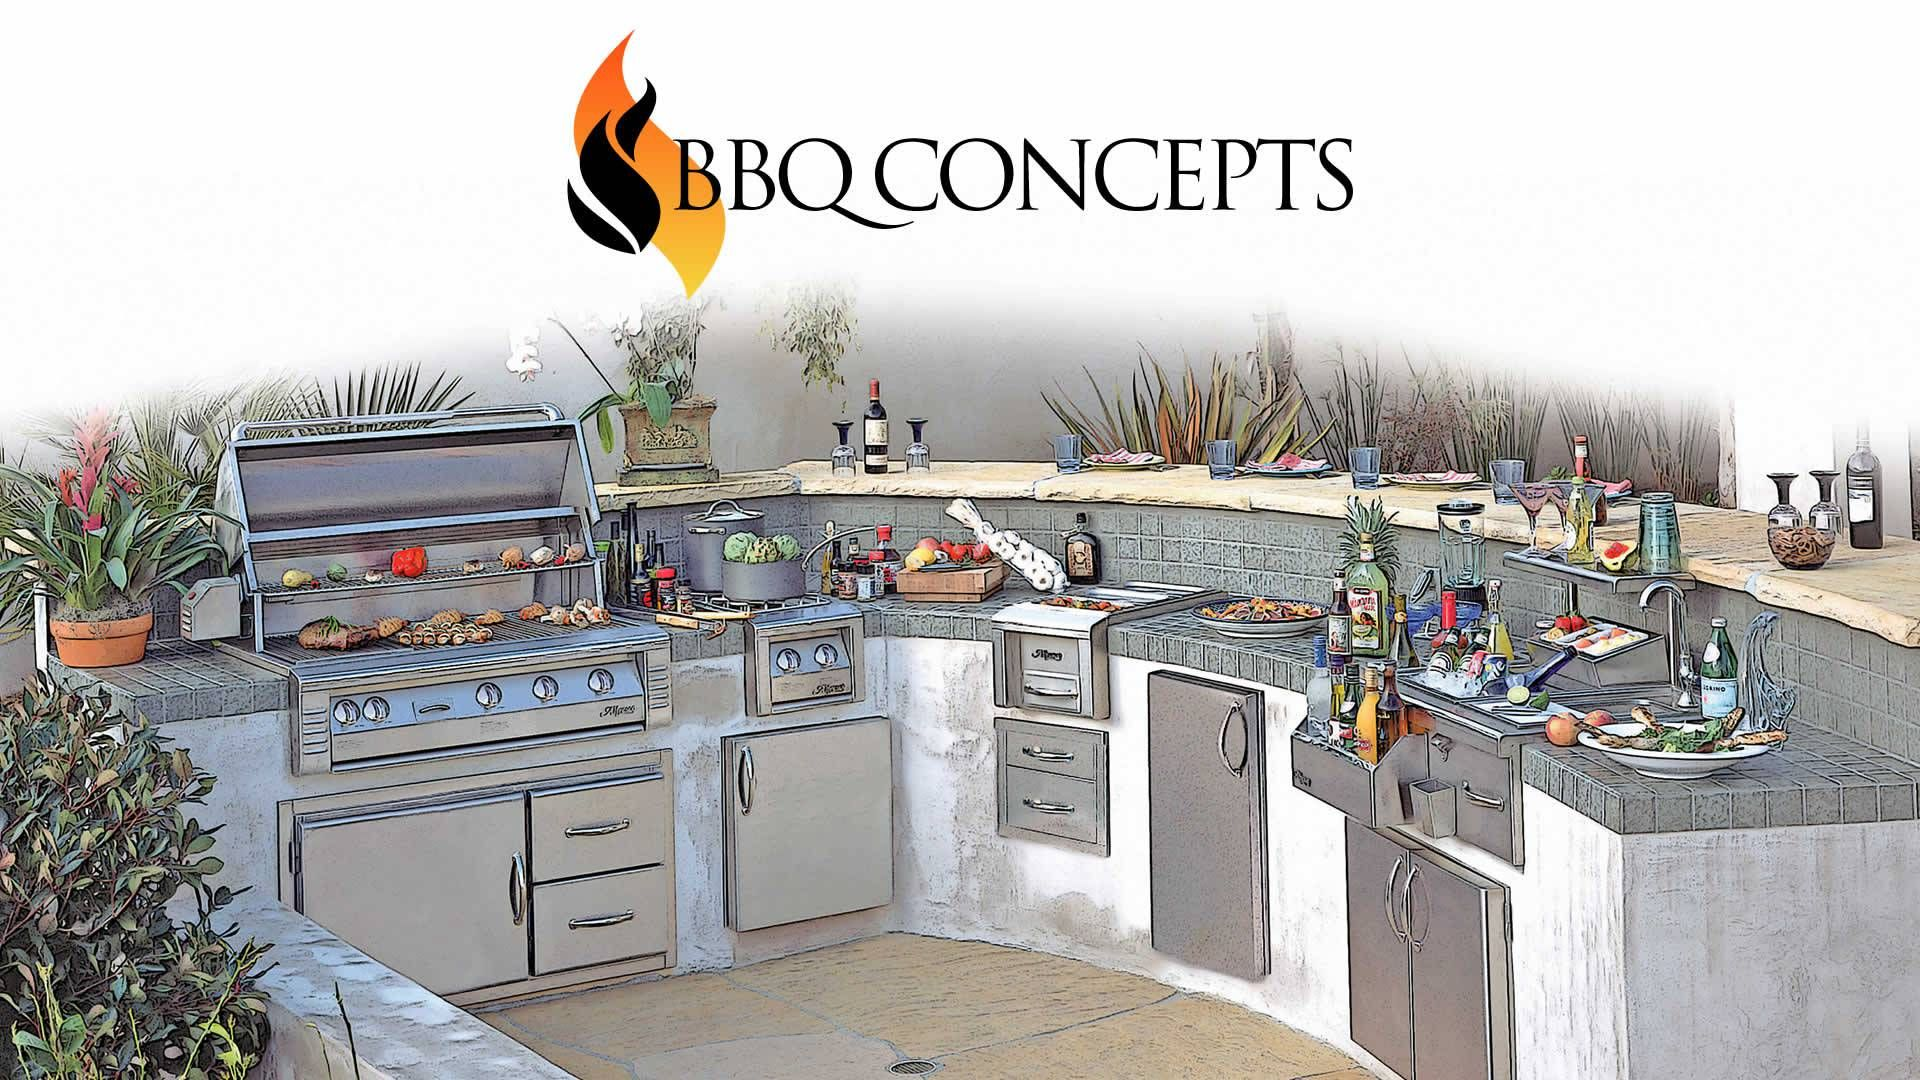 Outdoor Fireplaces Las Vegas Galaxy Outdoor Of Las Vegas Nevada Launches Brand New Website Patio Furniture Fire Build Outdoor Kitchen Iron Patio Furniture